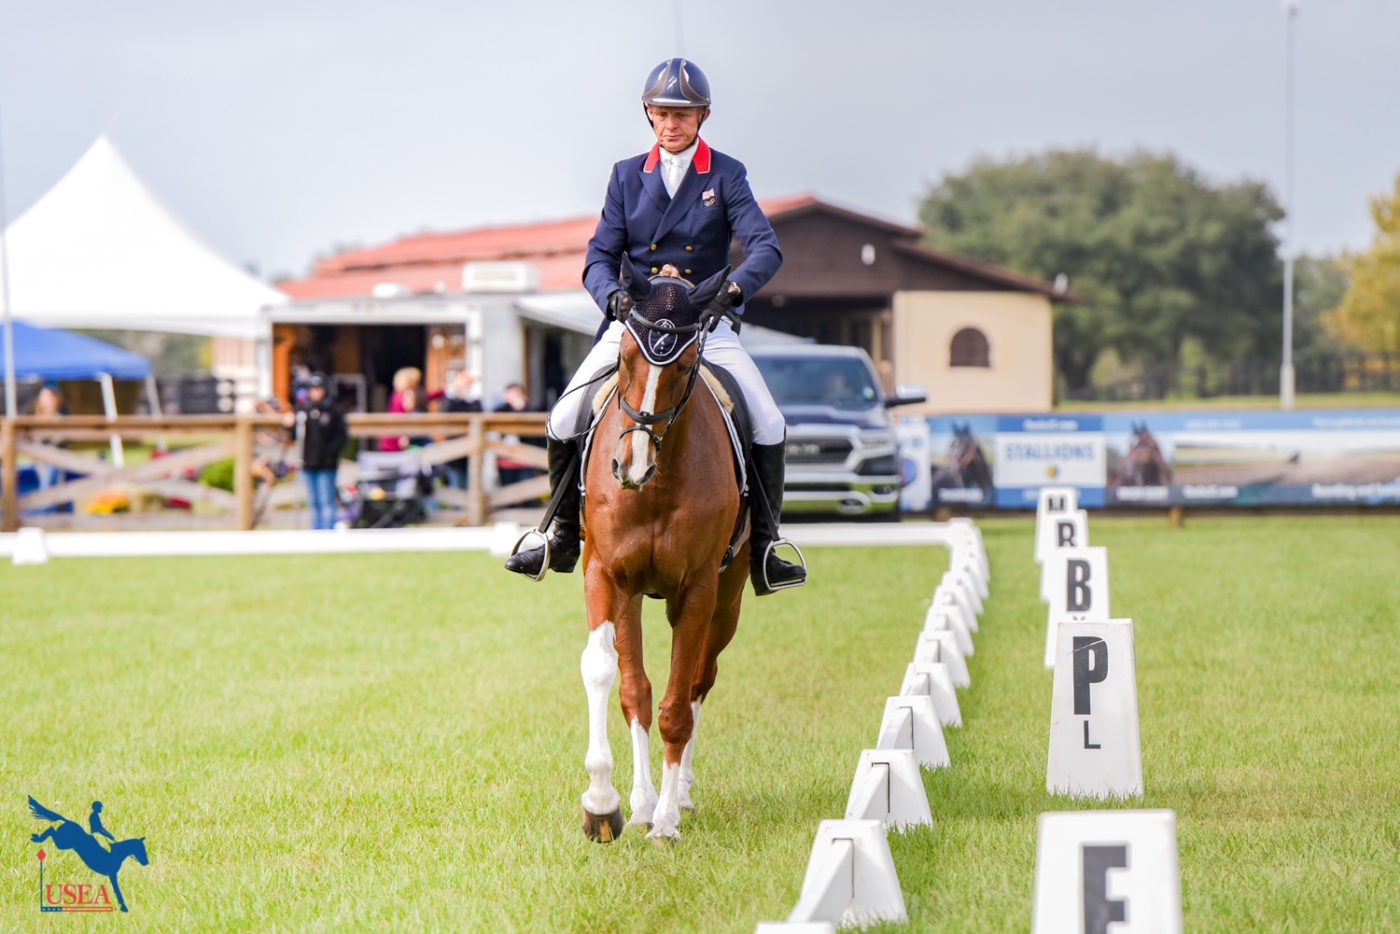 8th - Leslie Law and Voltaire De Tre - 37.1